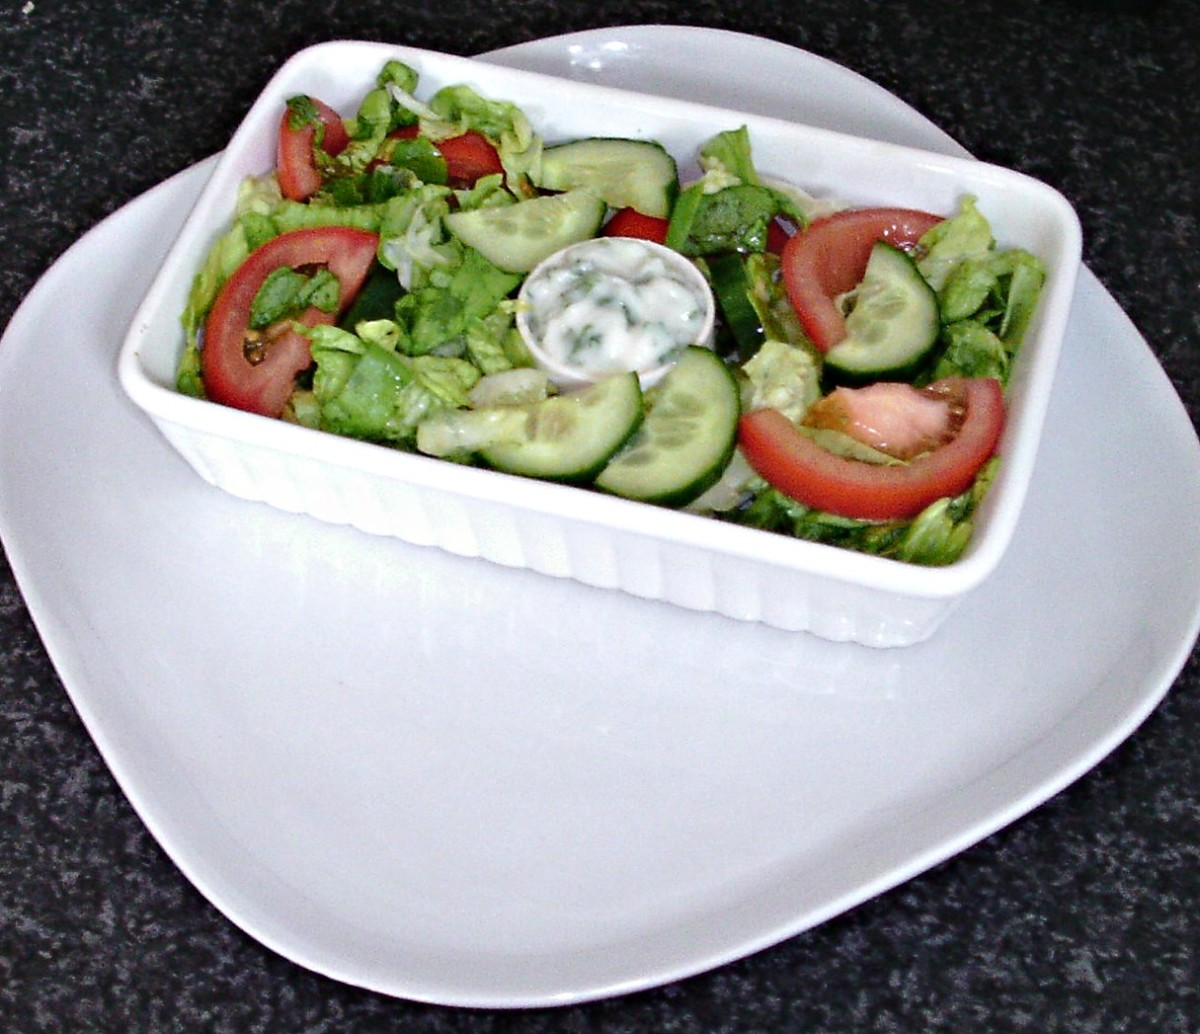 Simple salad and garlic mayo